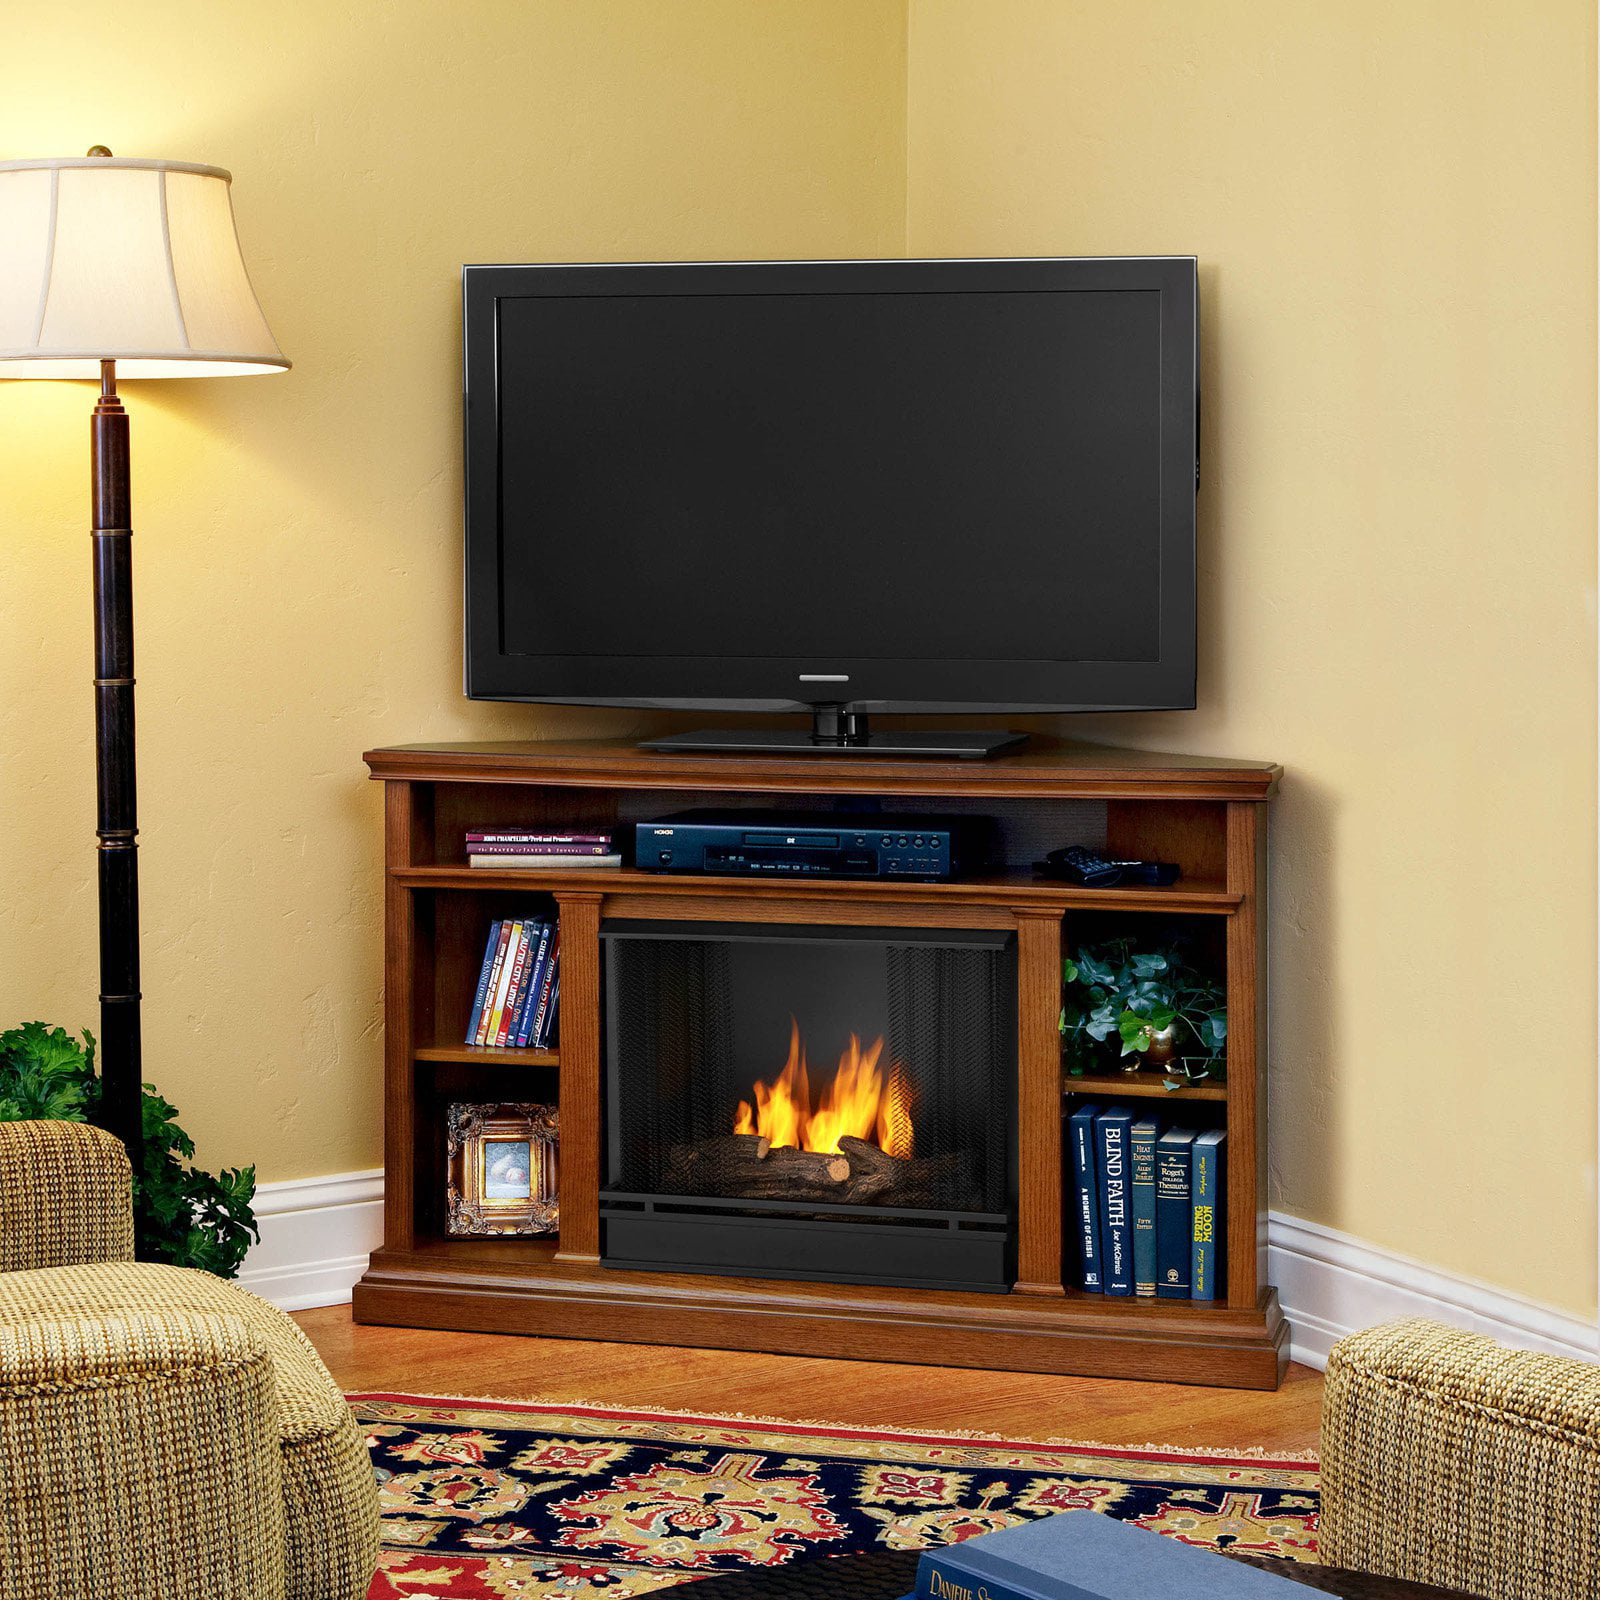 Free Shipping. Buy Real Flame Churchill Ventless Gel Fireplace - Oak at Walmart.com